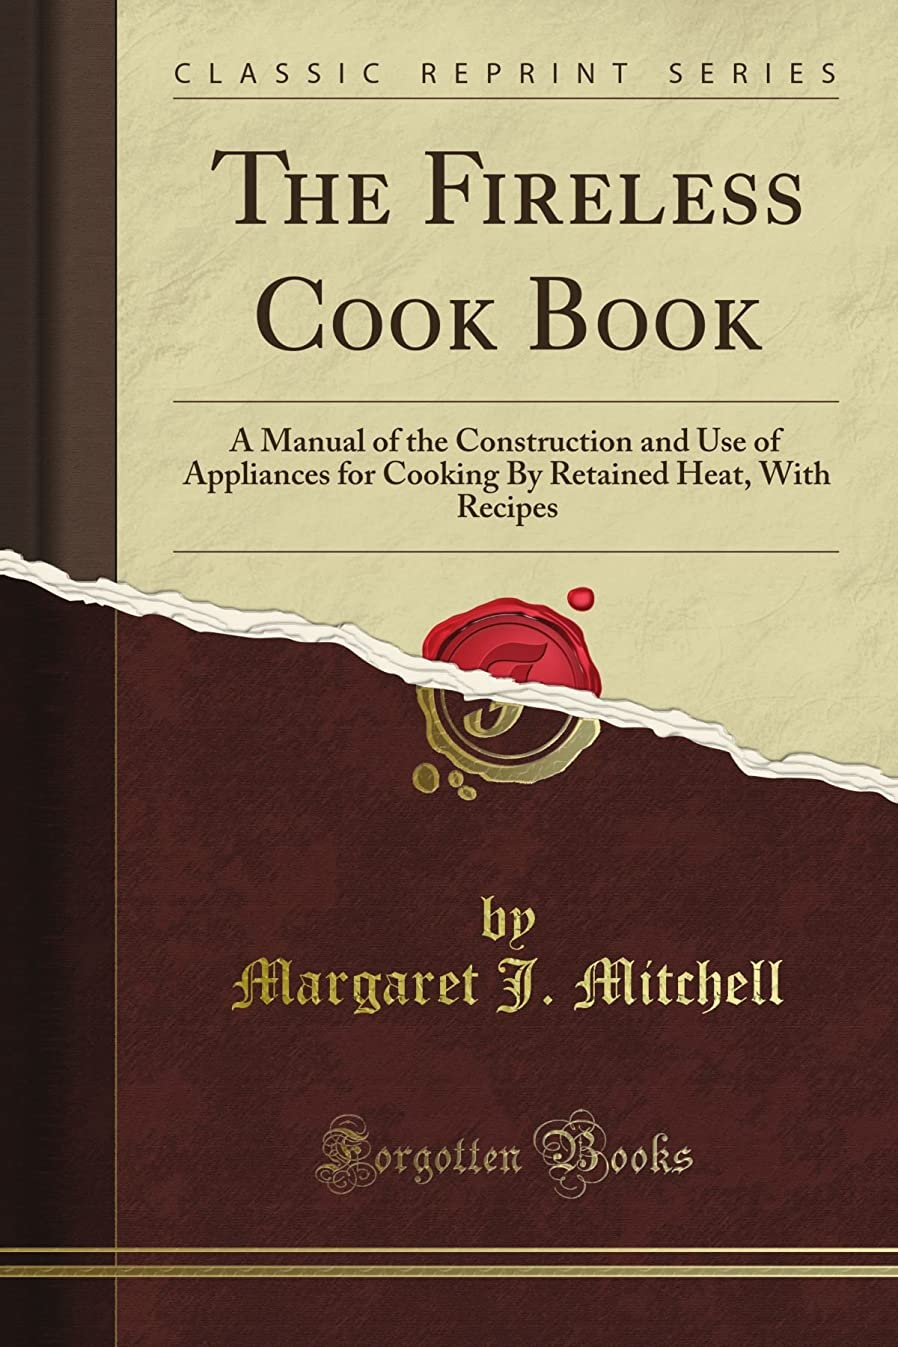 推測するエコーアドバイスThe Fireless Cook Book: A Manual of the Construction and Use of Appliances for Cooking By Retained Heat, With Recipes (Classic Reprint)